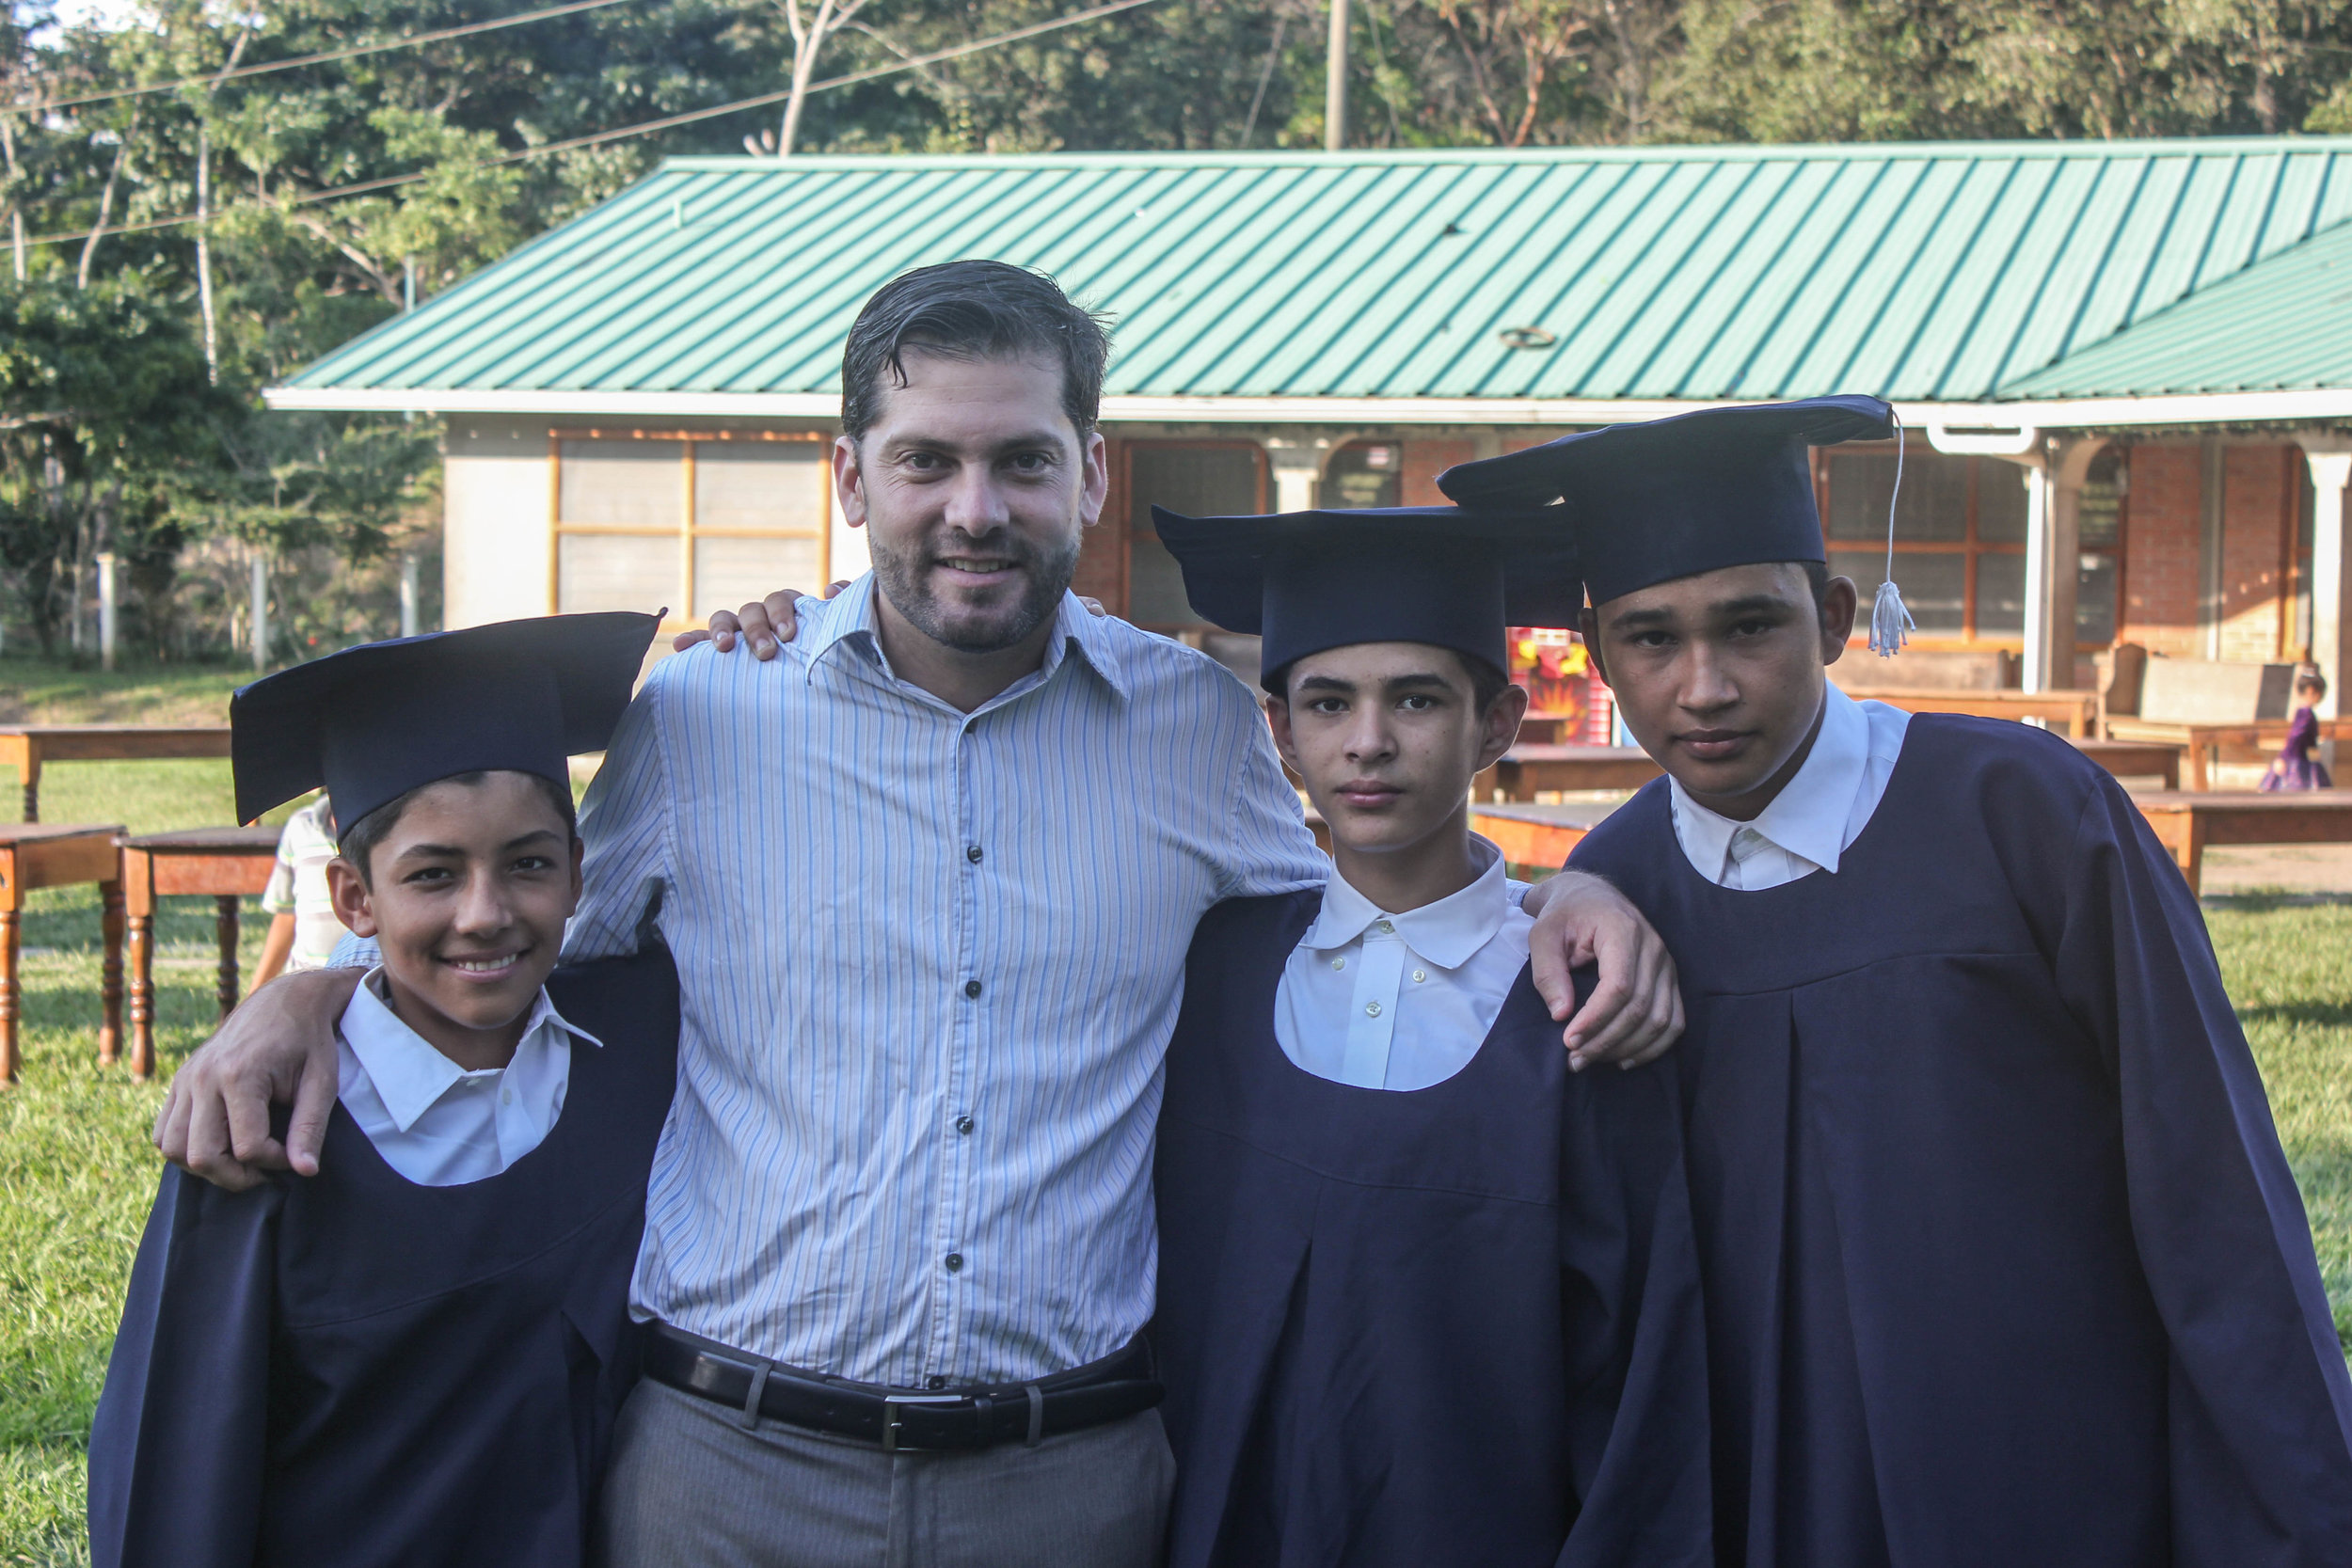 Adán (right) with Pato and his fellow classmates at his 6th grade graduation in December 2016